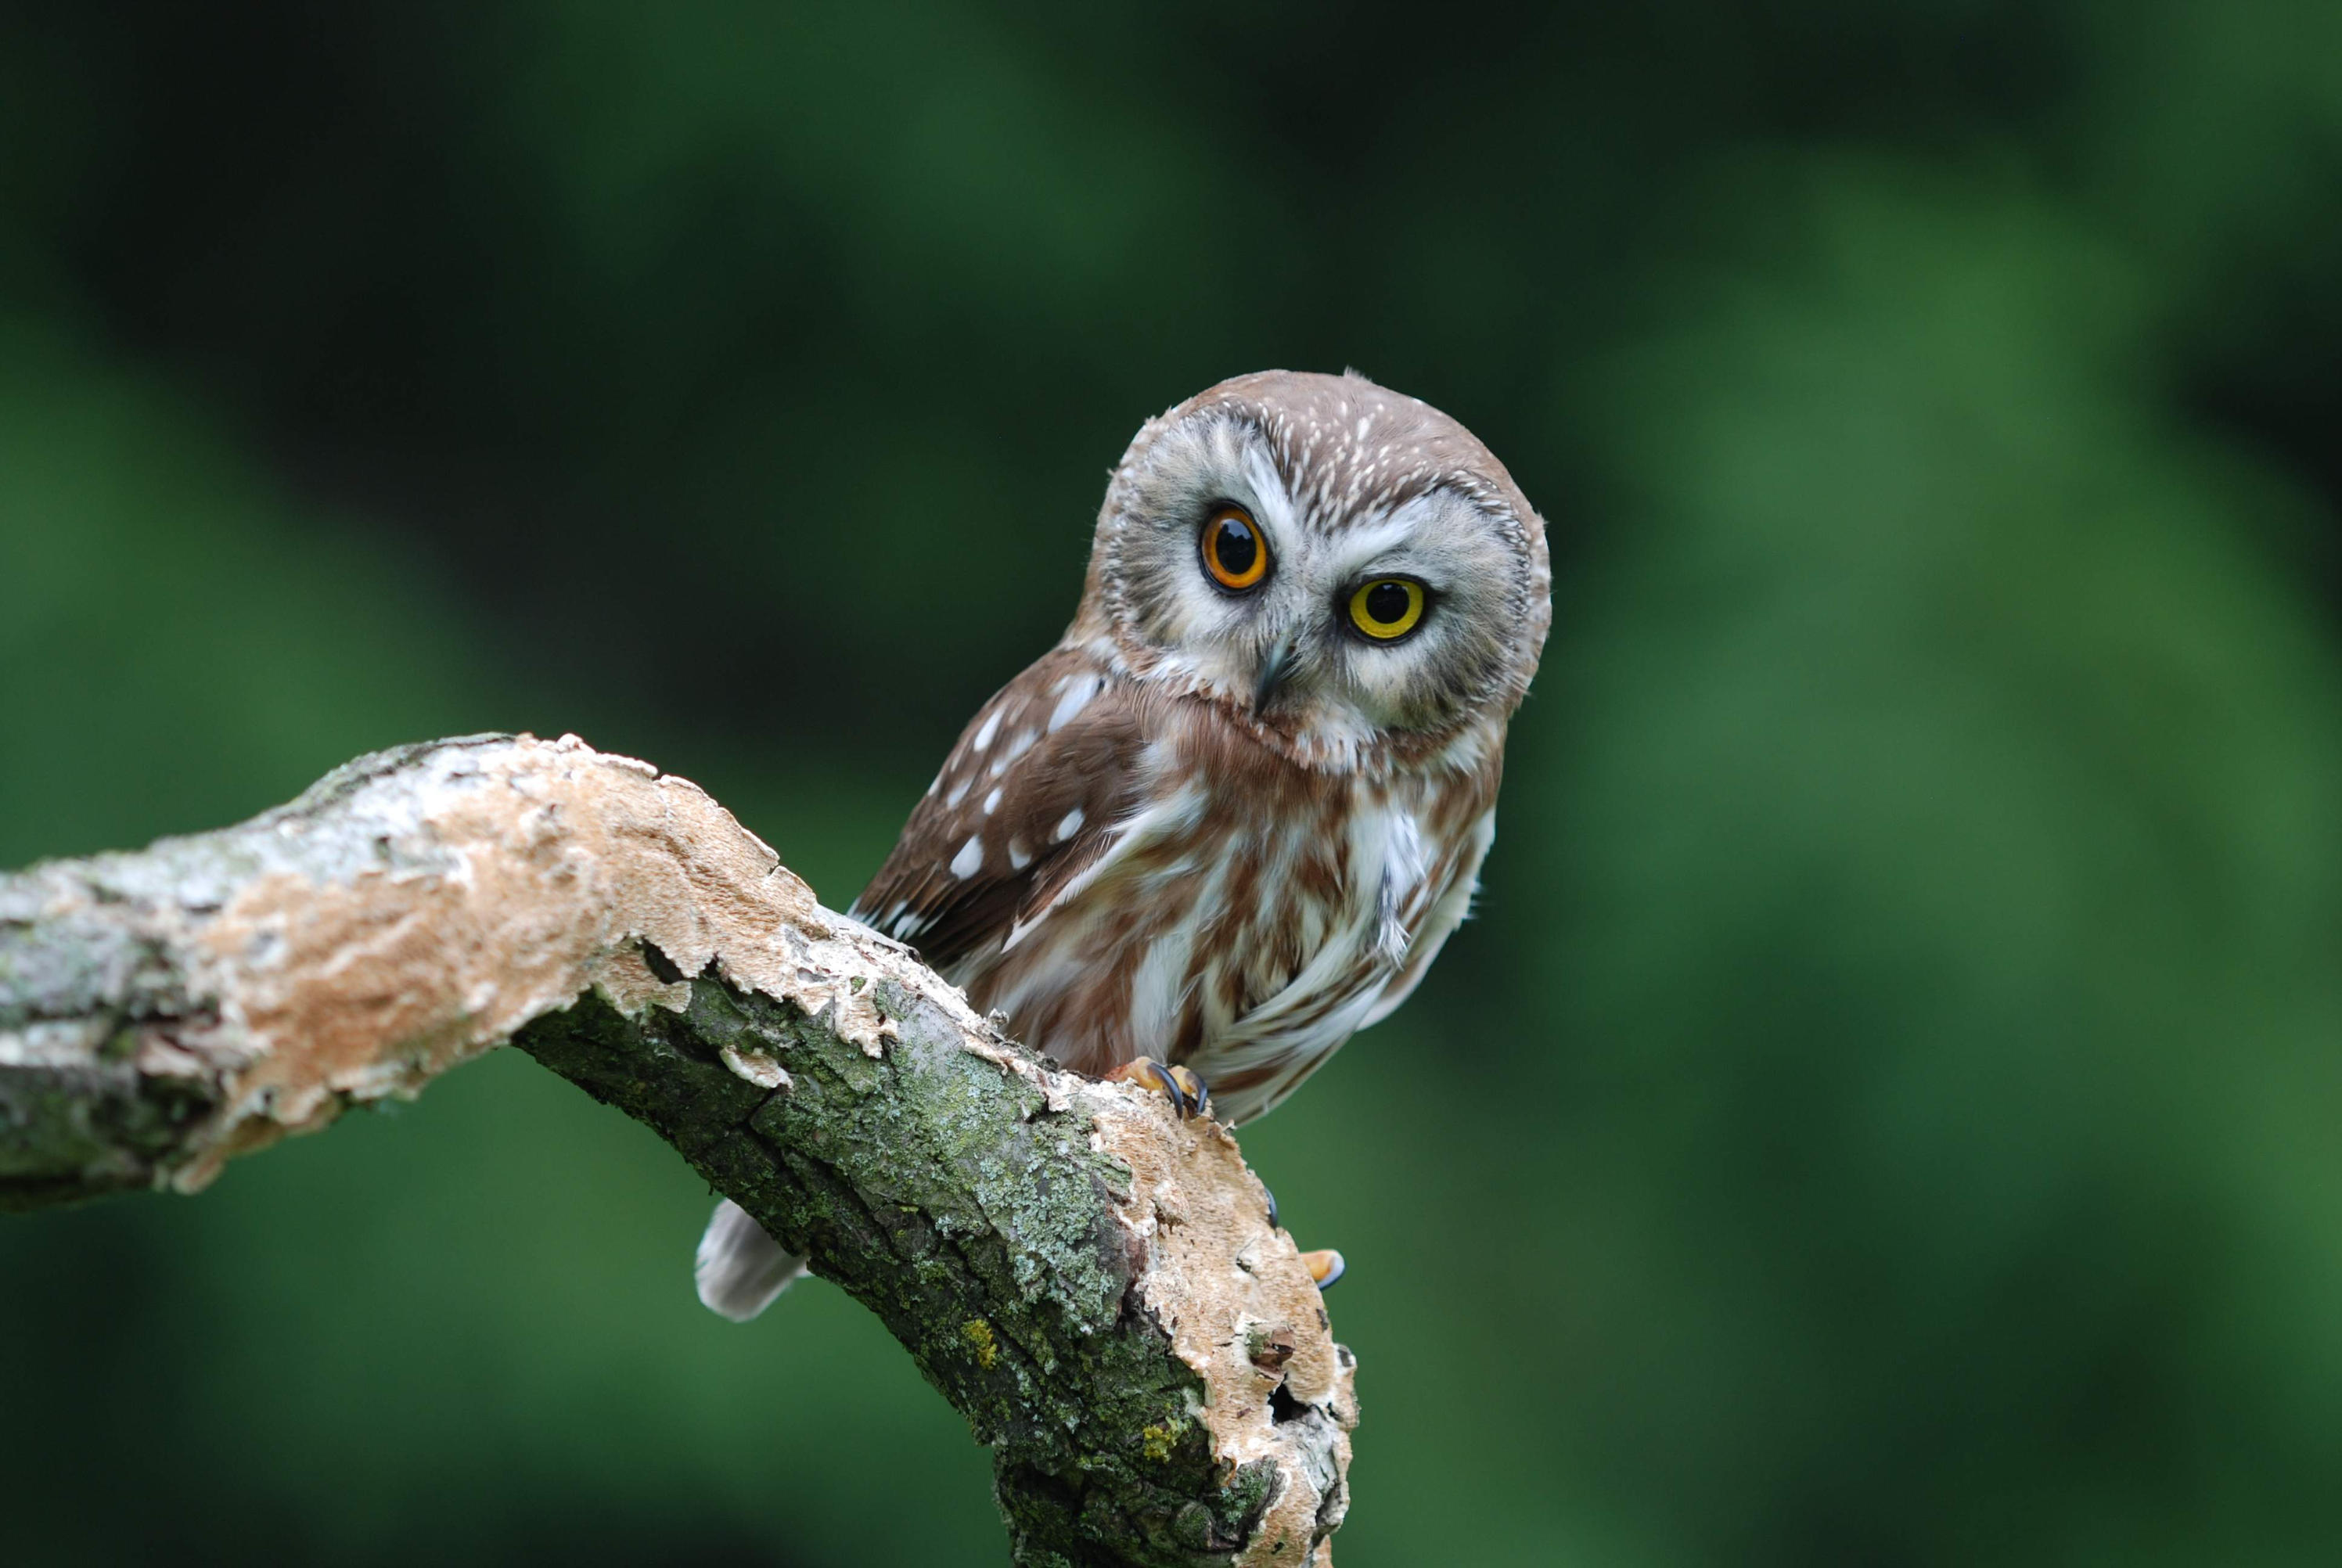 Owl on branch at willows, uk by robotsuk